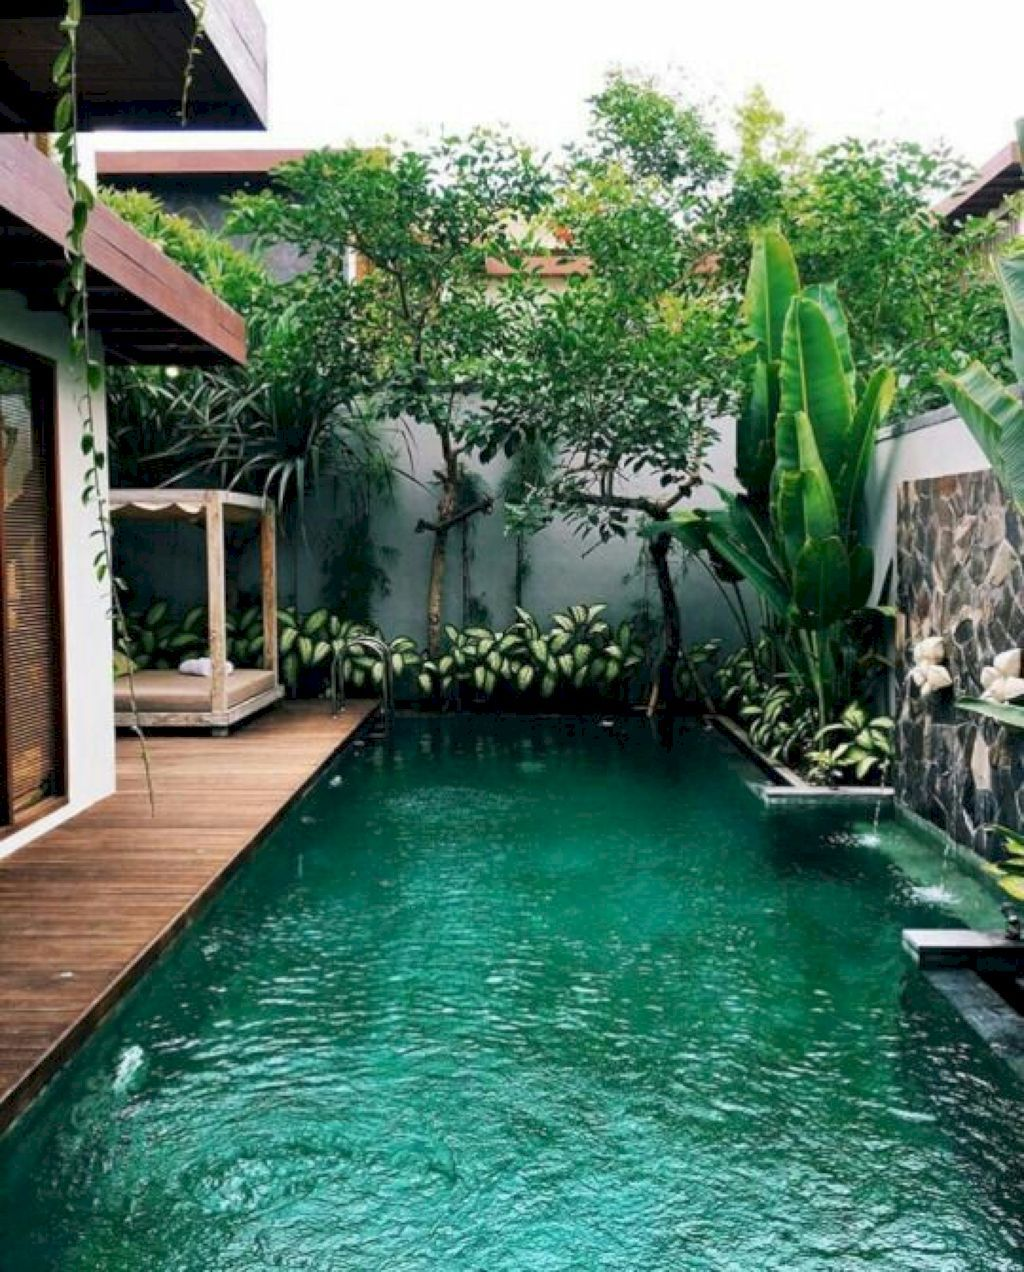 Marvelous Small Pool Design Ideas For Your Yard